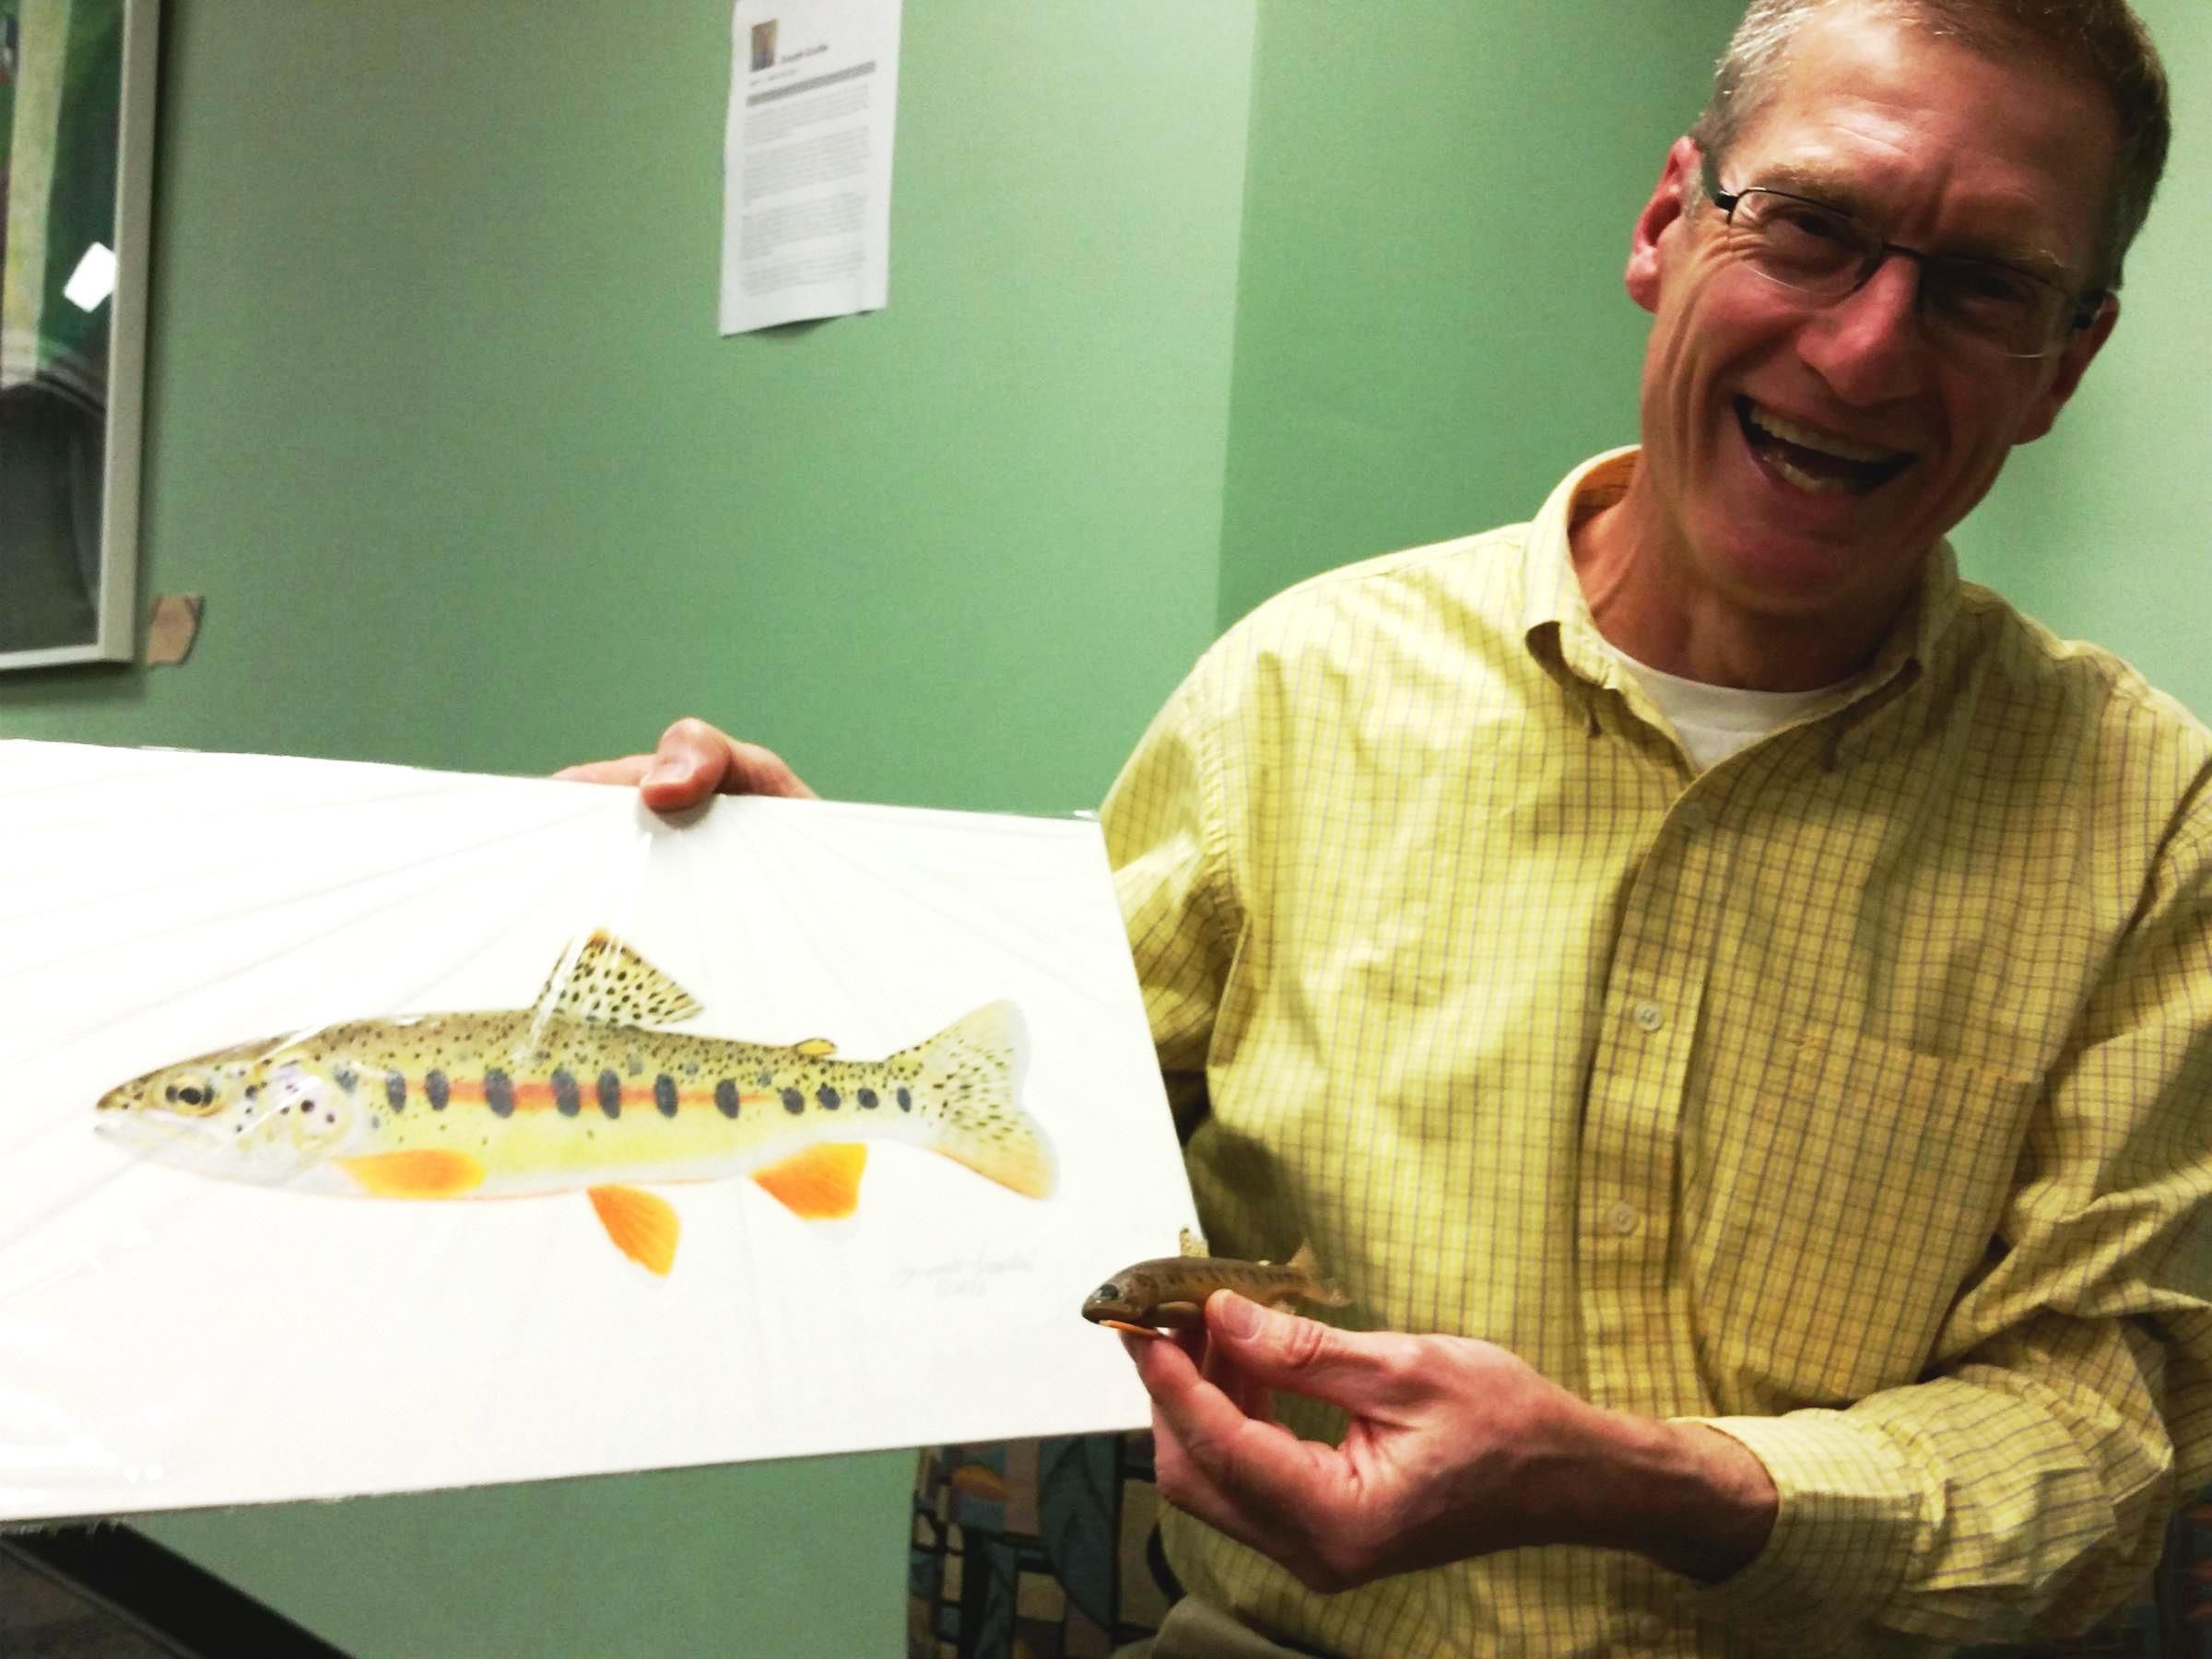 Freshwater fish kansas city - Joseph Tomelleri Hangs Out With His Art And The Specimen That Inspired It